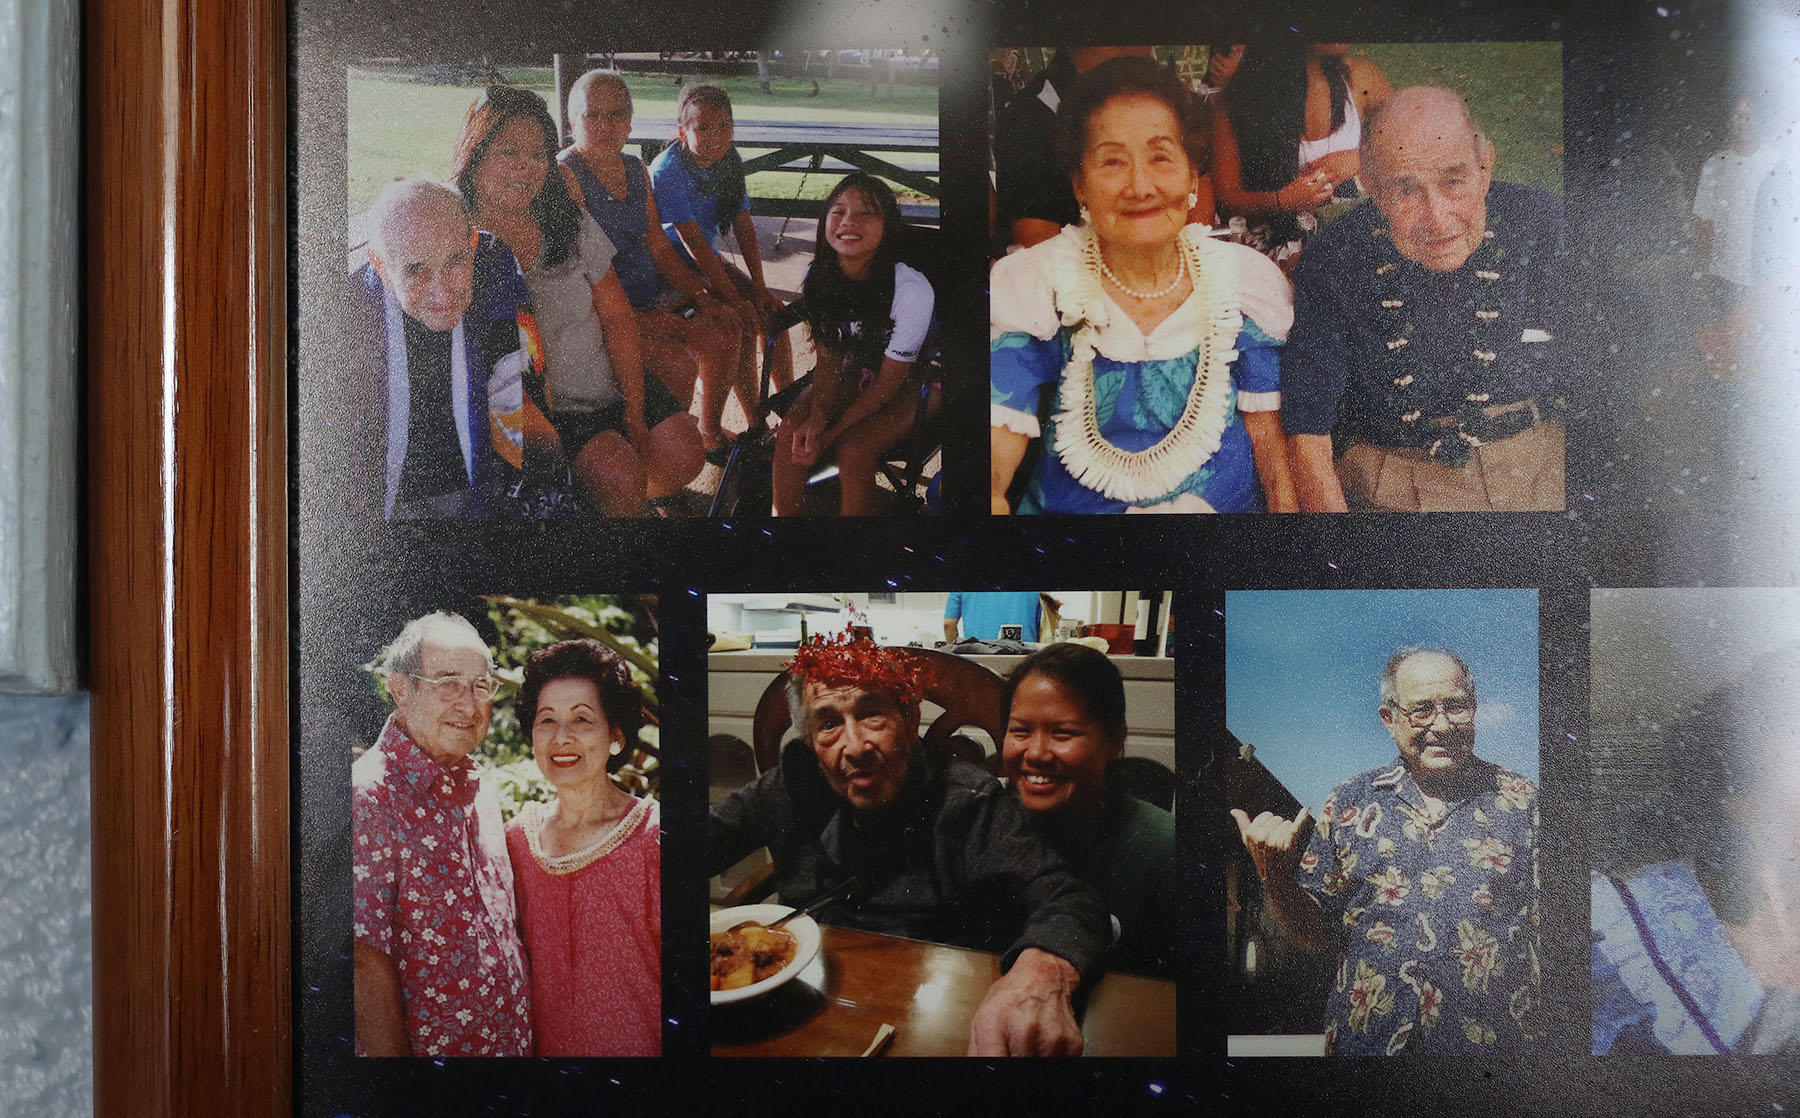 <p>A photo collage in Dorothy Meadows&#8217; Punchbowl apartment includes images of her late husband, Walt Meadows. The two would sit and hold hands every day — he&#8217;d even kiss her hand before leaving to go the bathroom, says grand-nephew Eugene Hopkins.</p>